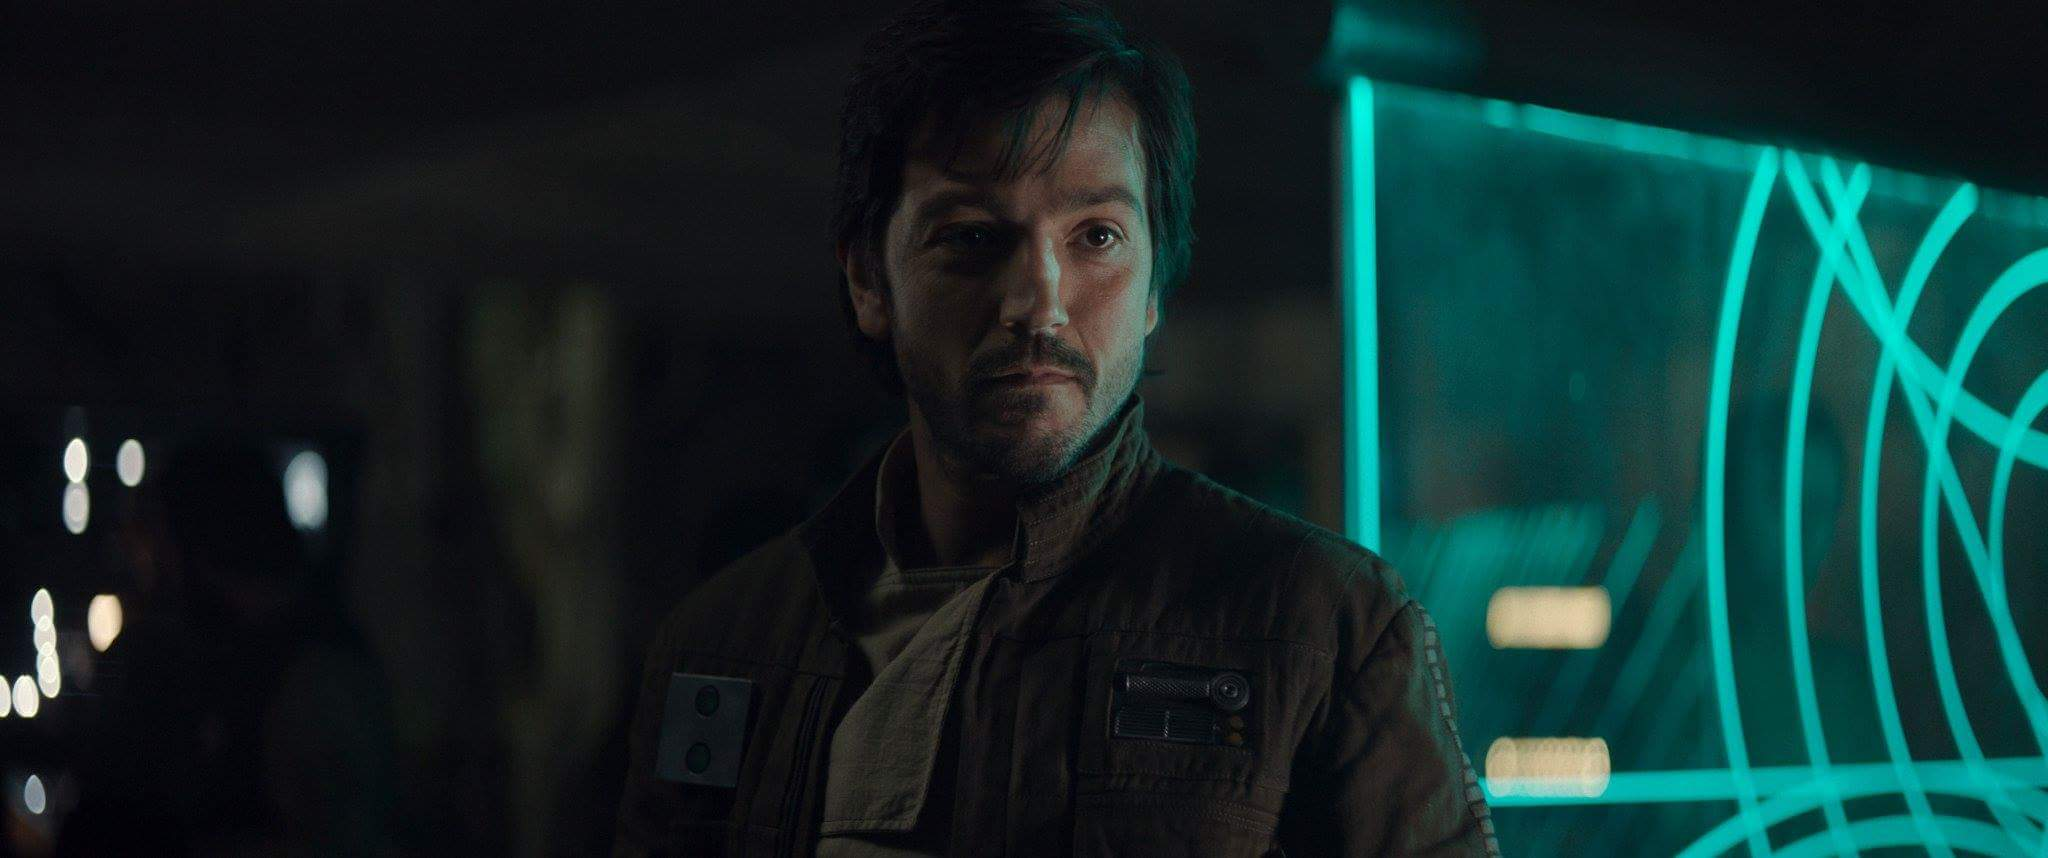 Diego Luna as Cassian Andor in the 2016 film Rogue One, to my mind the only truly successful Star Wars film.